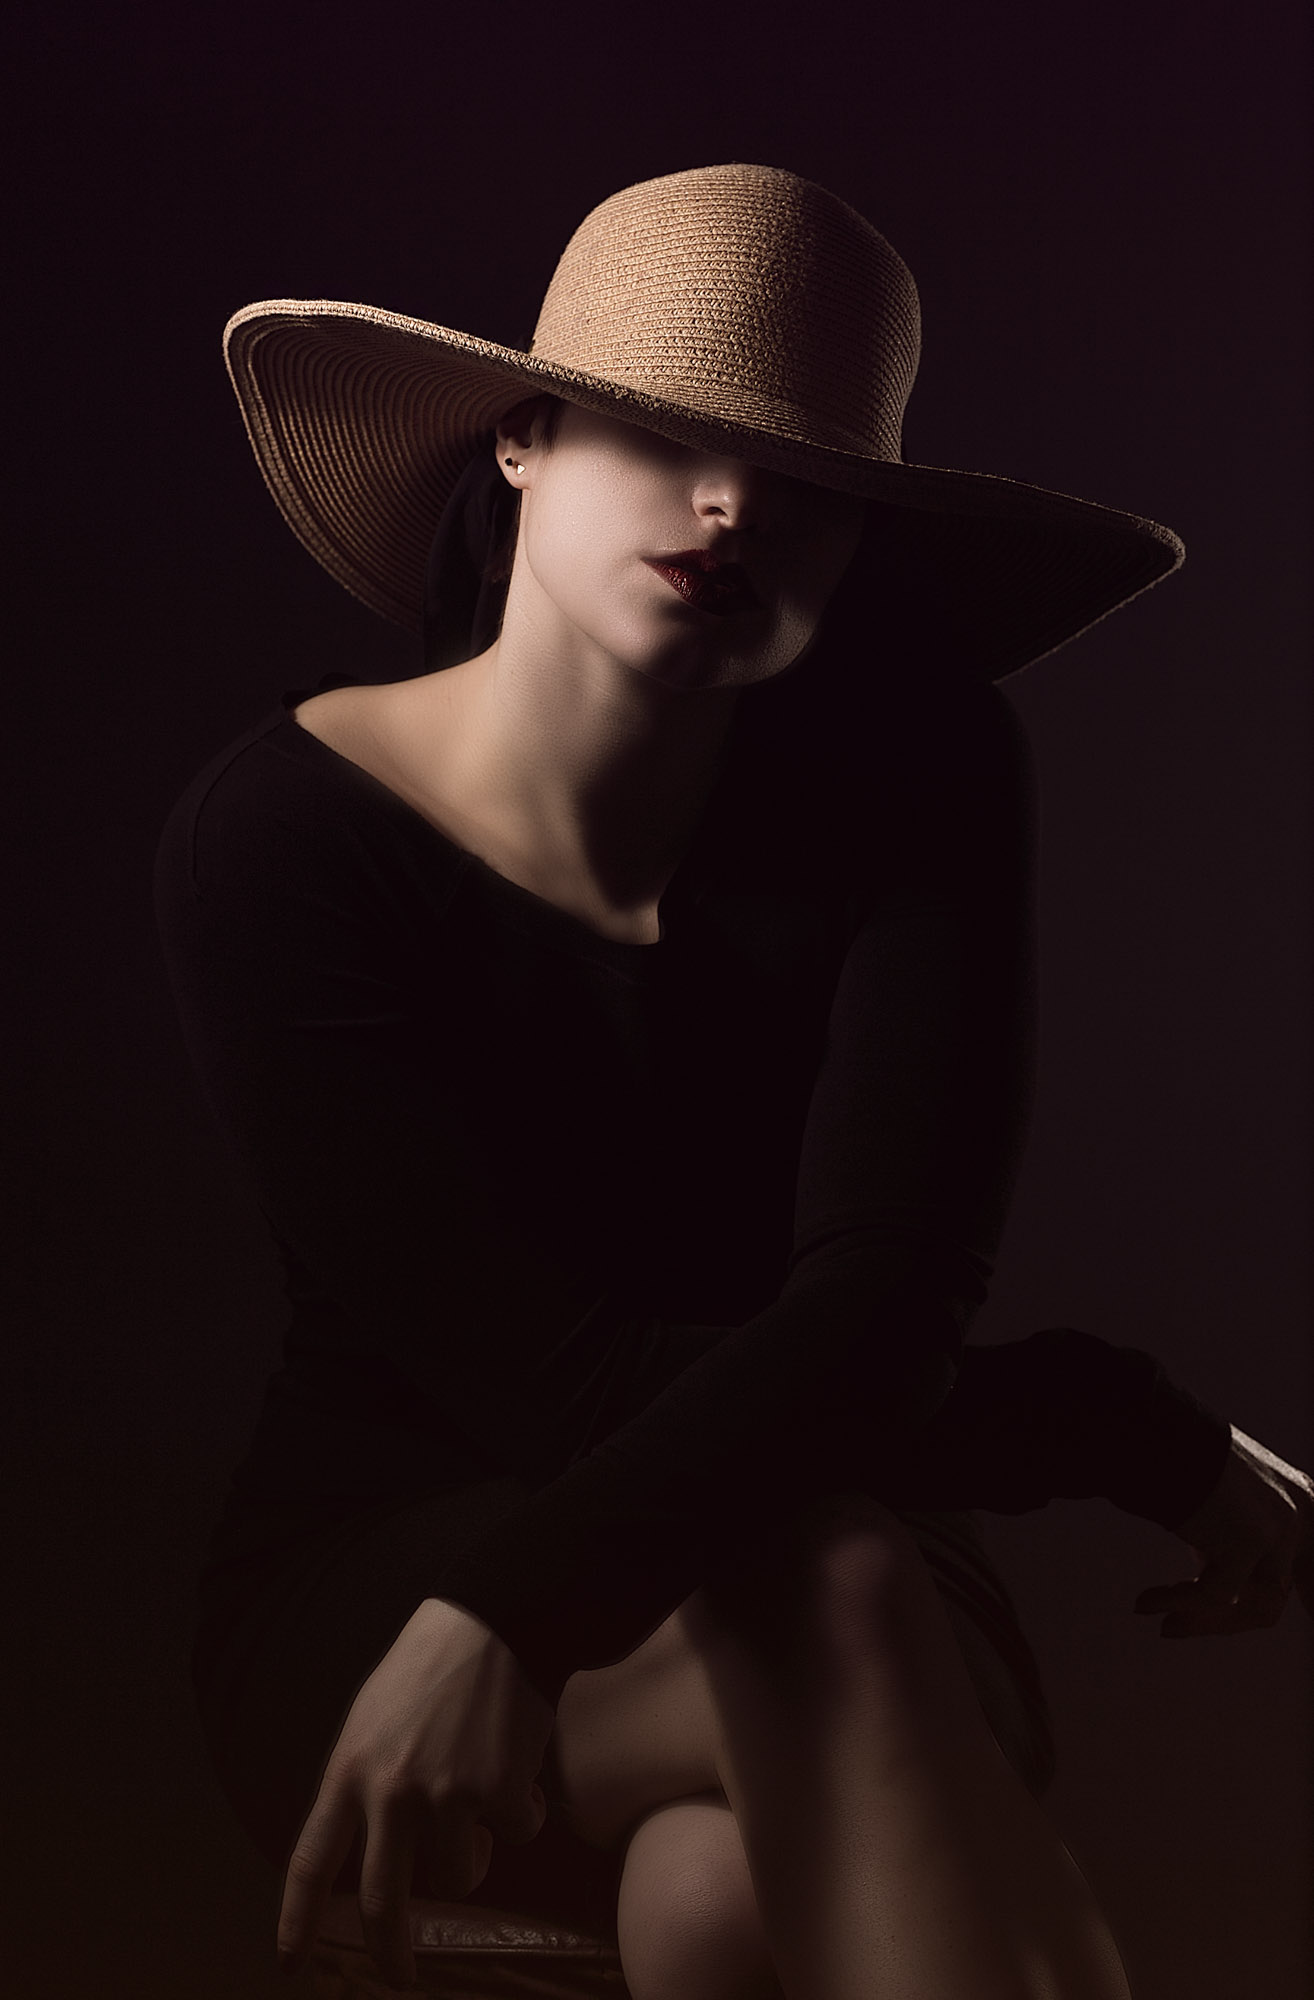 Chicago Portrait & Fashion Photographer - Edgy Studio Photoshoot Female Performer and Comedian_9.jpg